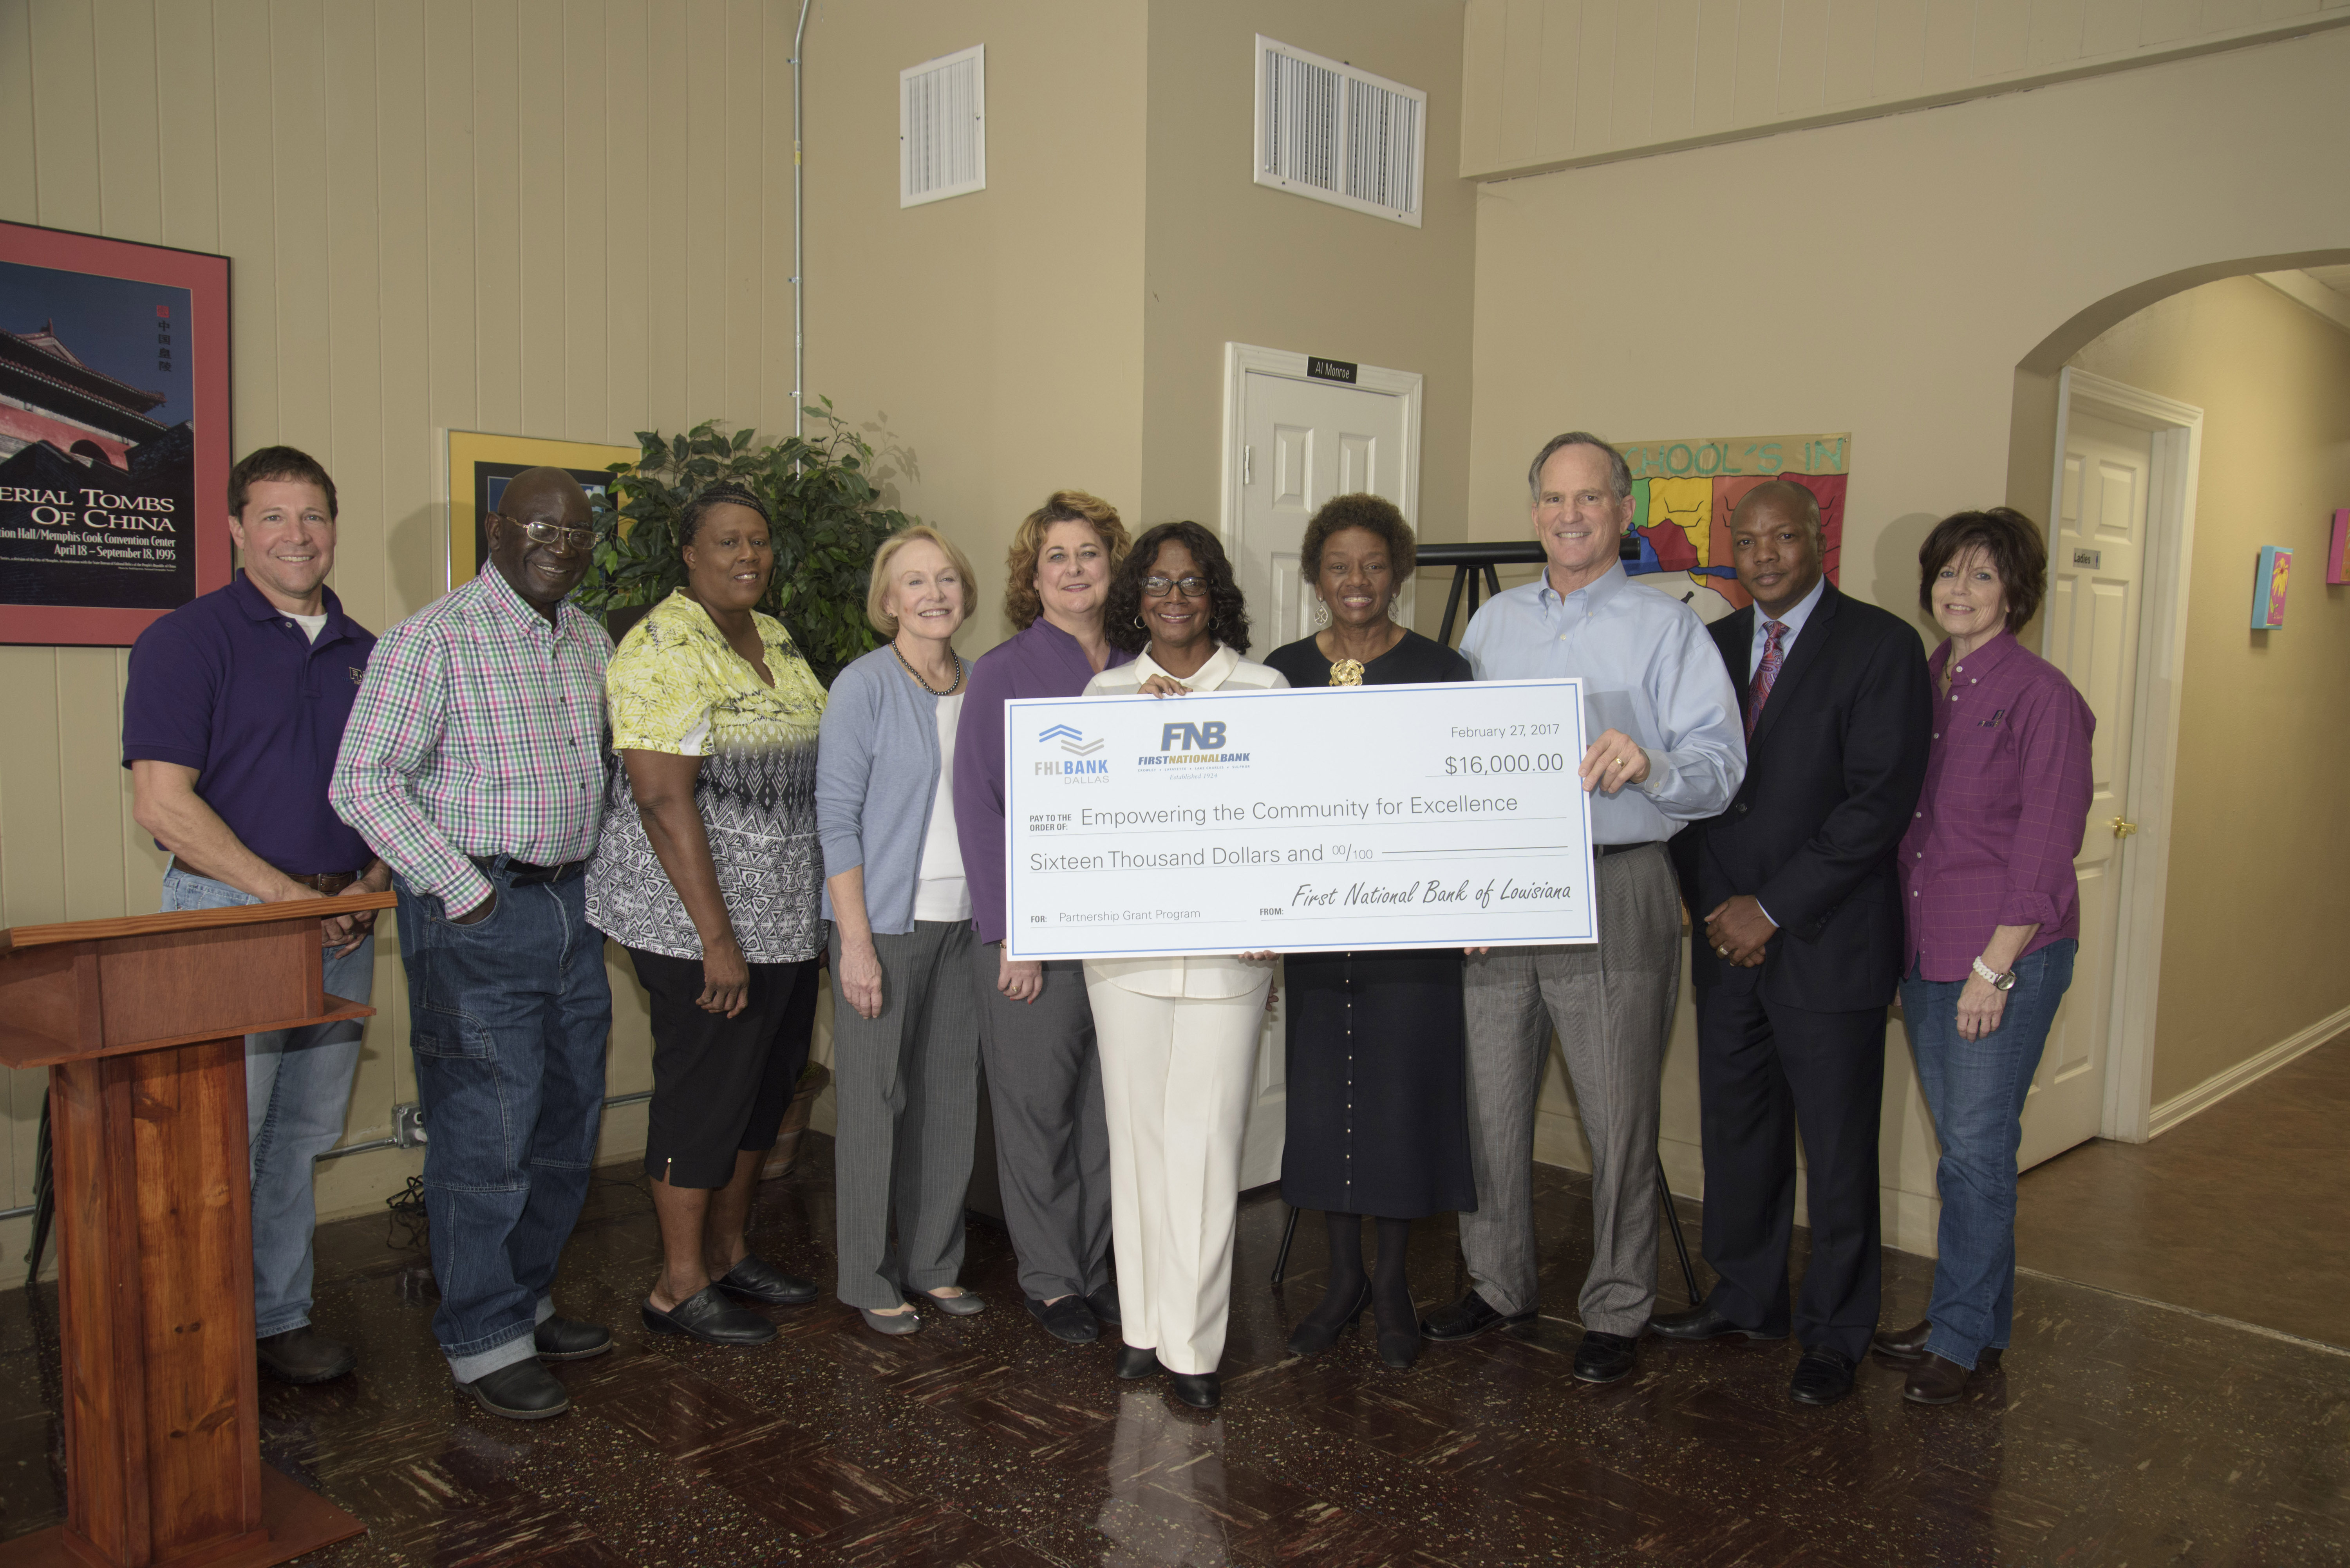 Louisiana-based nonprofit organization Empowering the Community for Excellence received a $16,000 Partnership Grant Program award through FHLB Dallas and First National Bank of Louisiana at a check presentation today. (Photo: Business Wire)